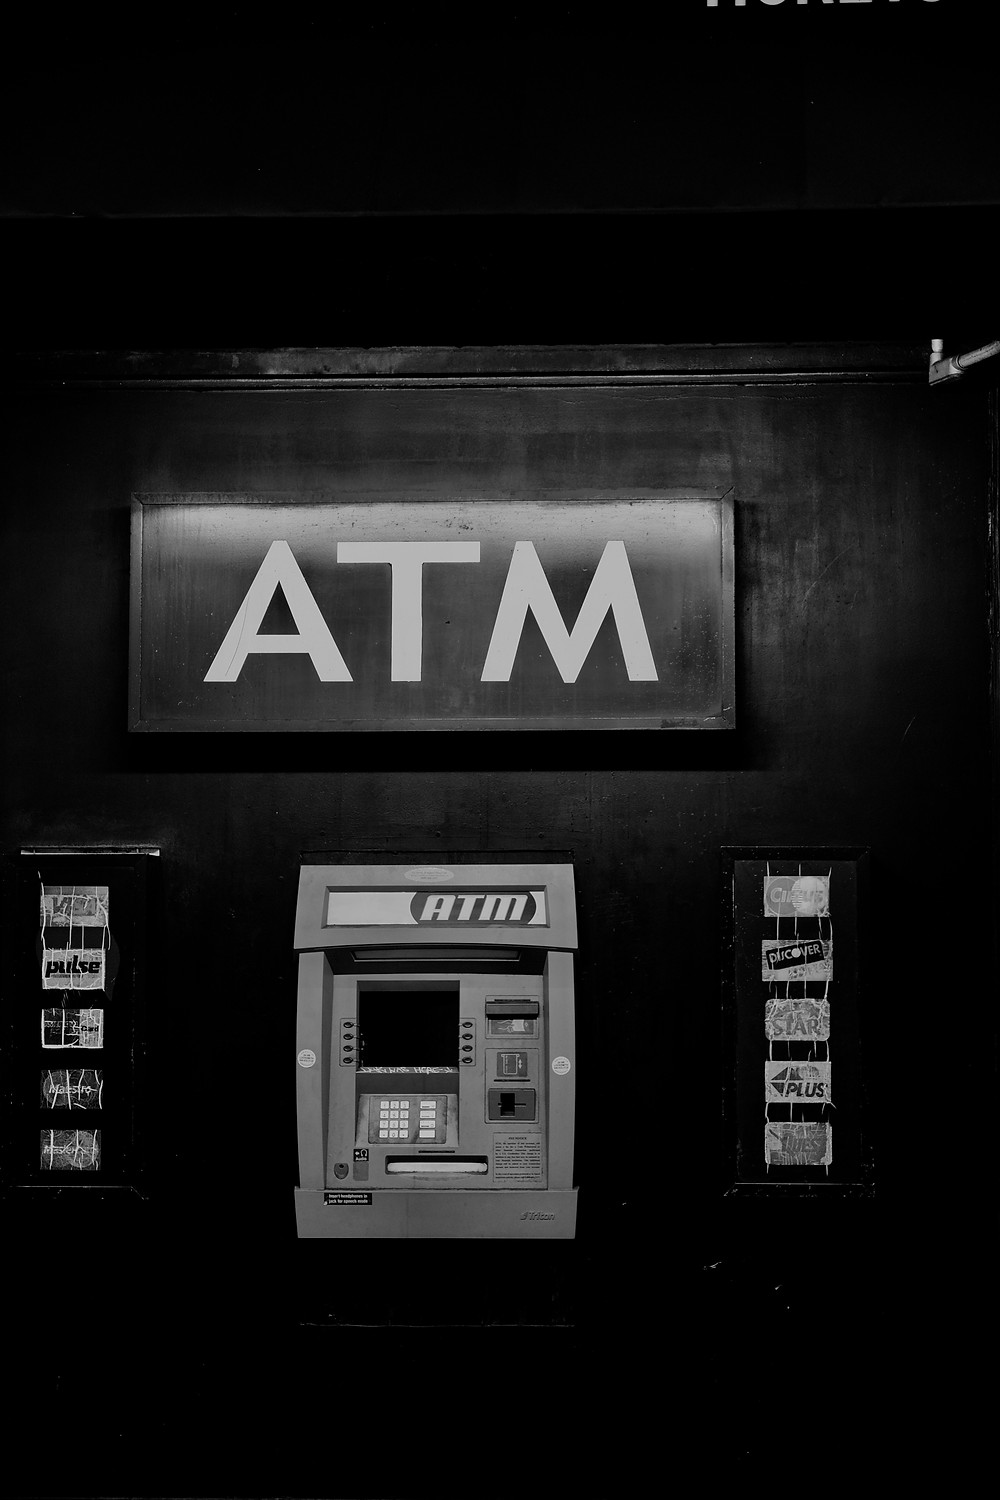 Black and white photograph of an unbranded ATM machine. Photo by Johny vino on Unsplash.